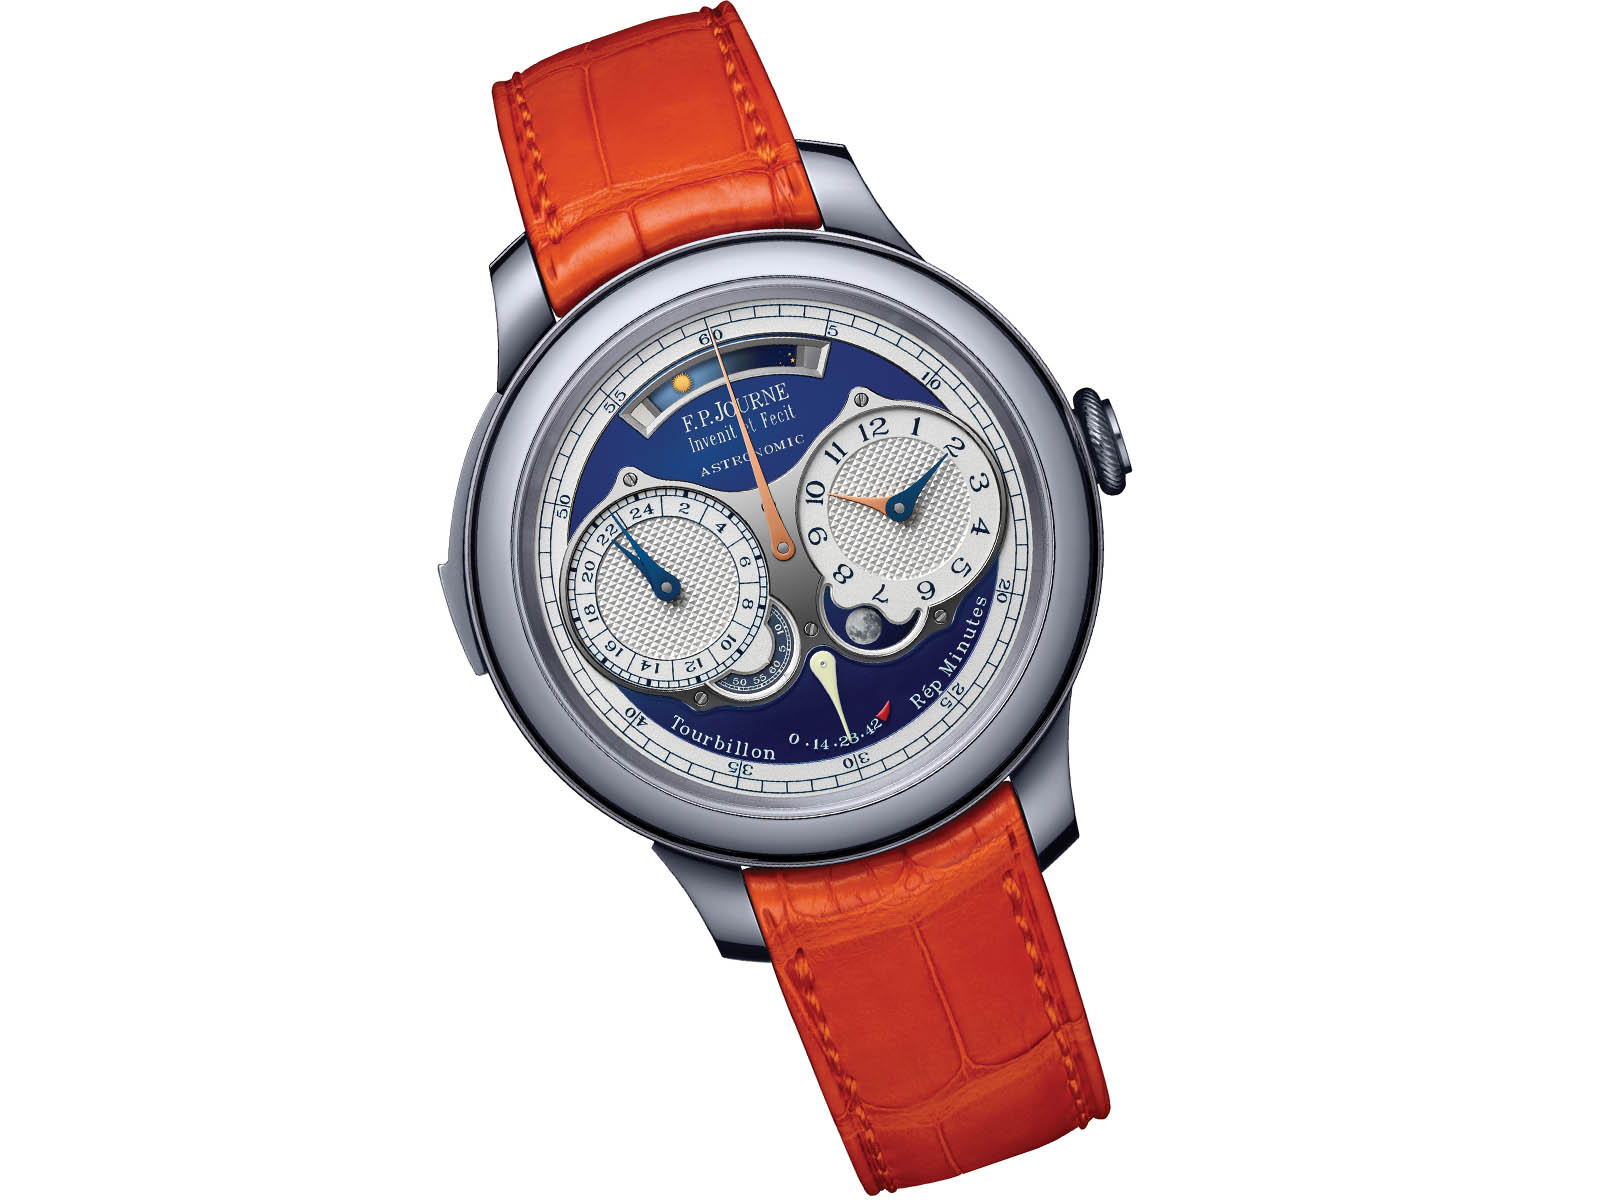 f-p-journe-astronomic-blue-1.jpg